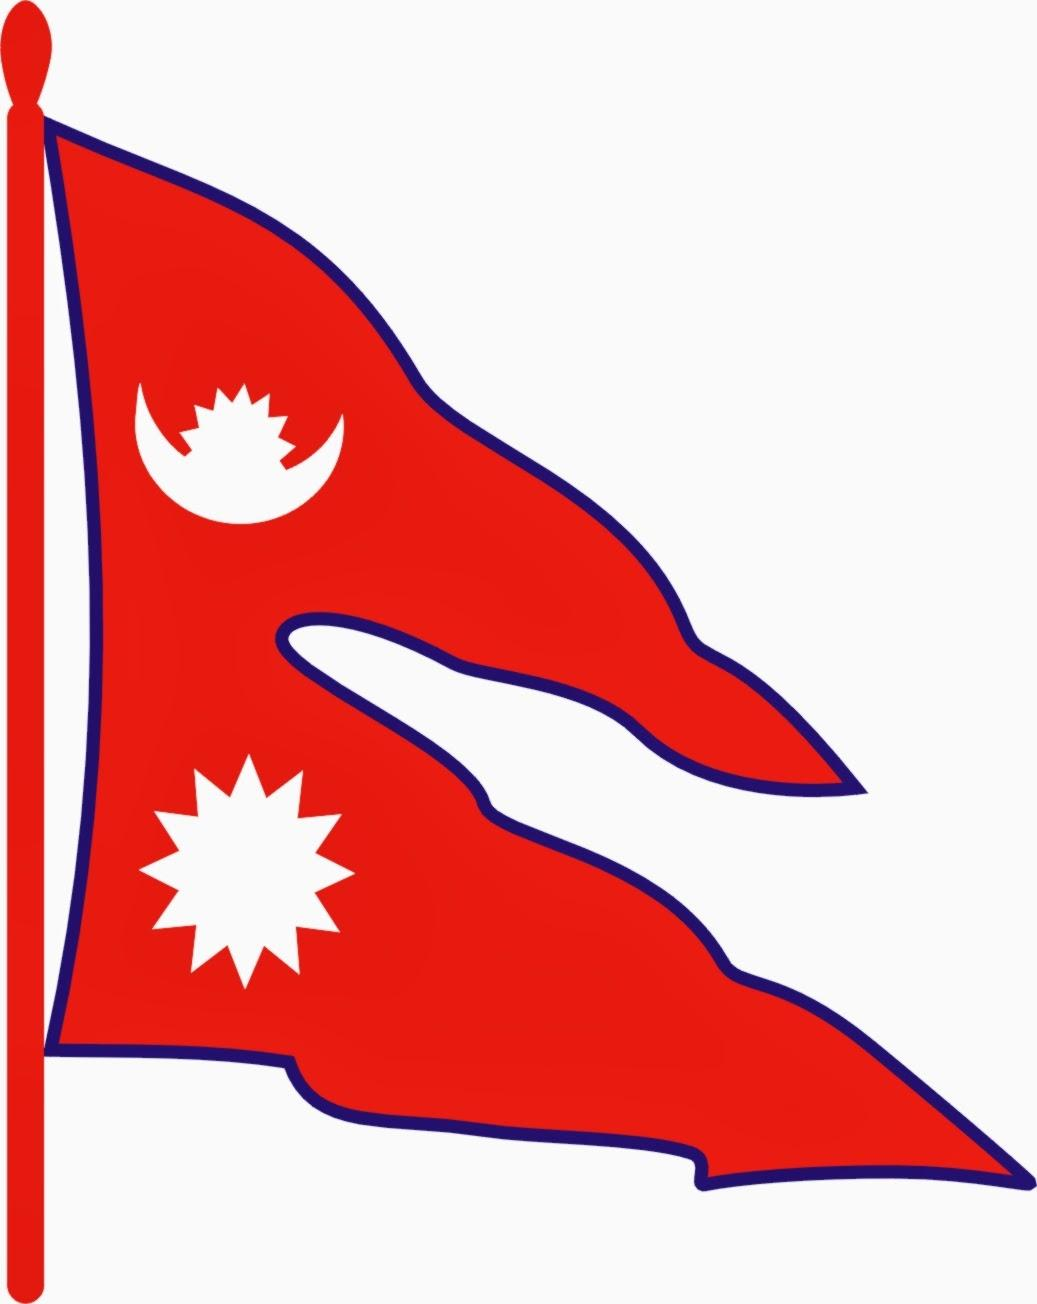 The National Flag of Nepal